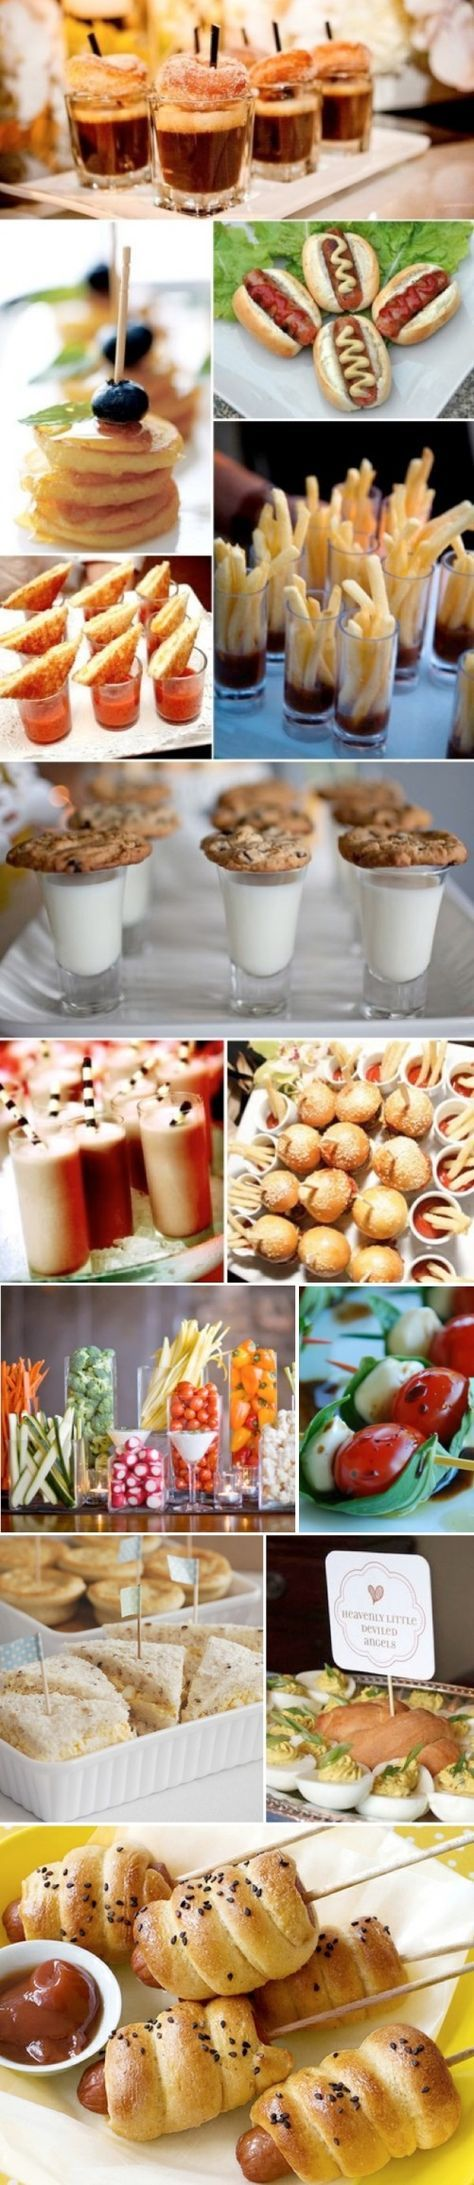 Finger food ideas for any party